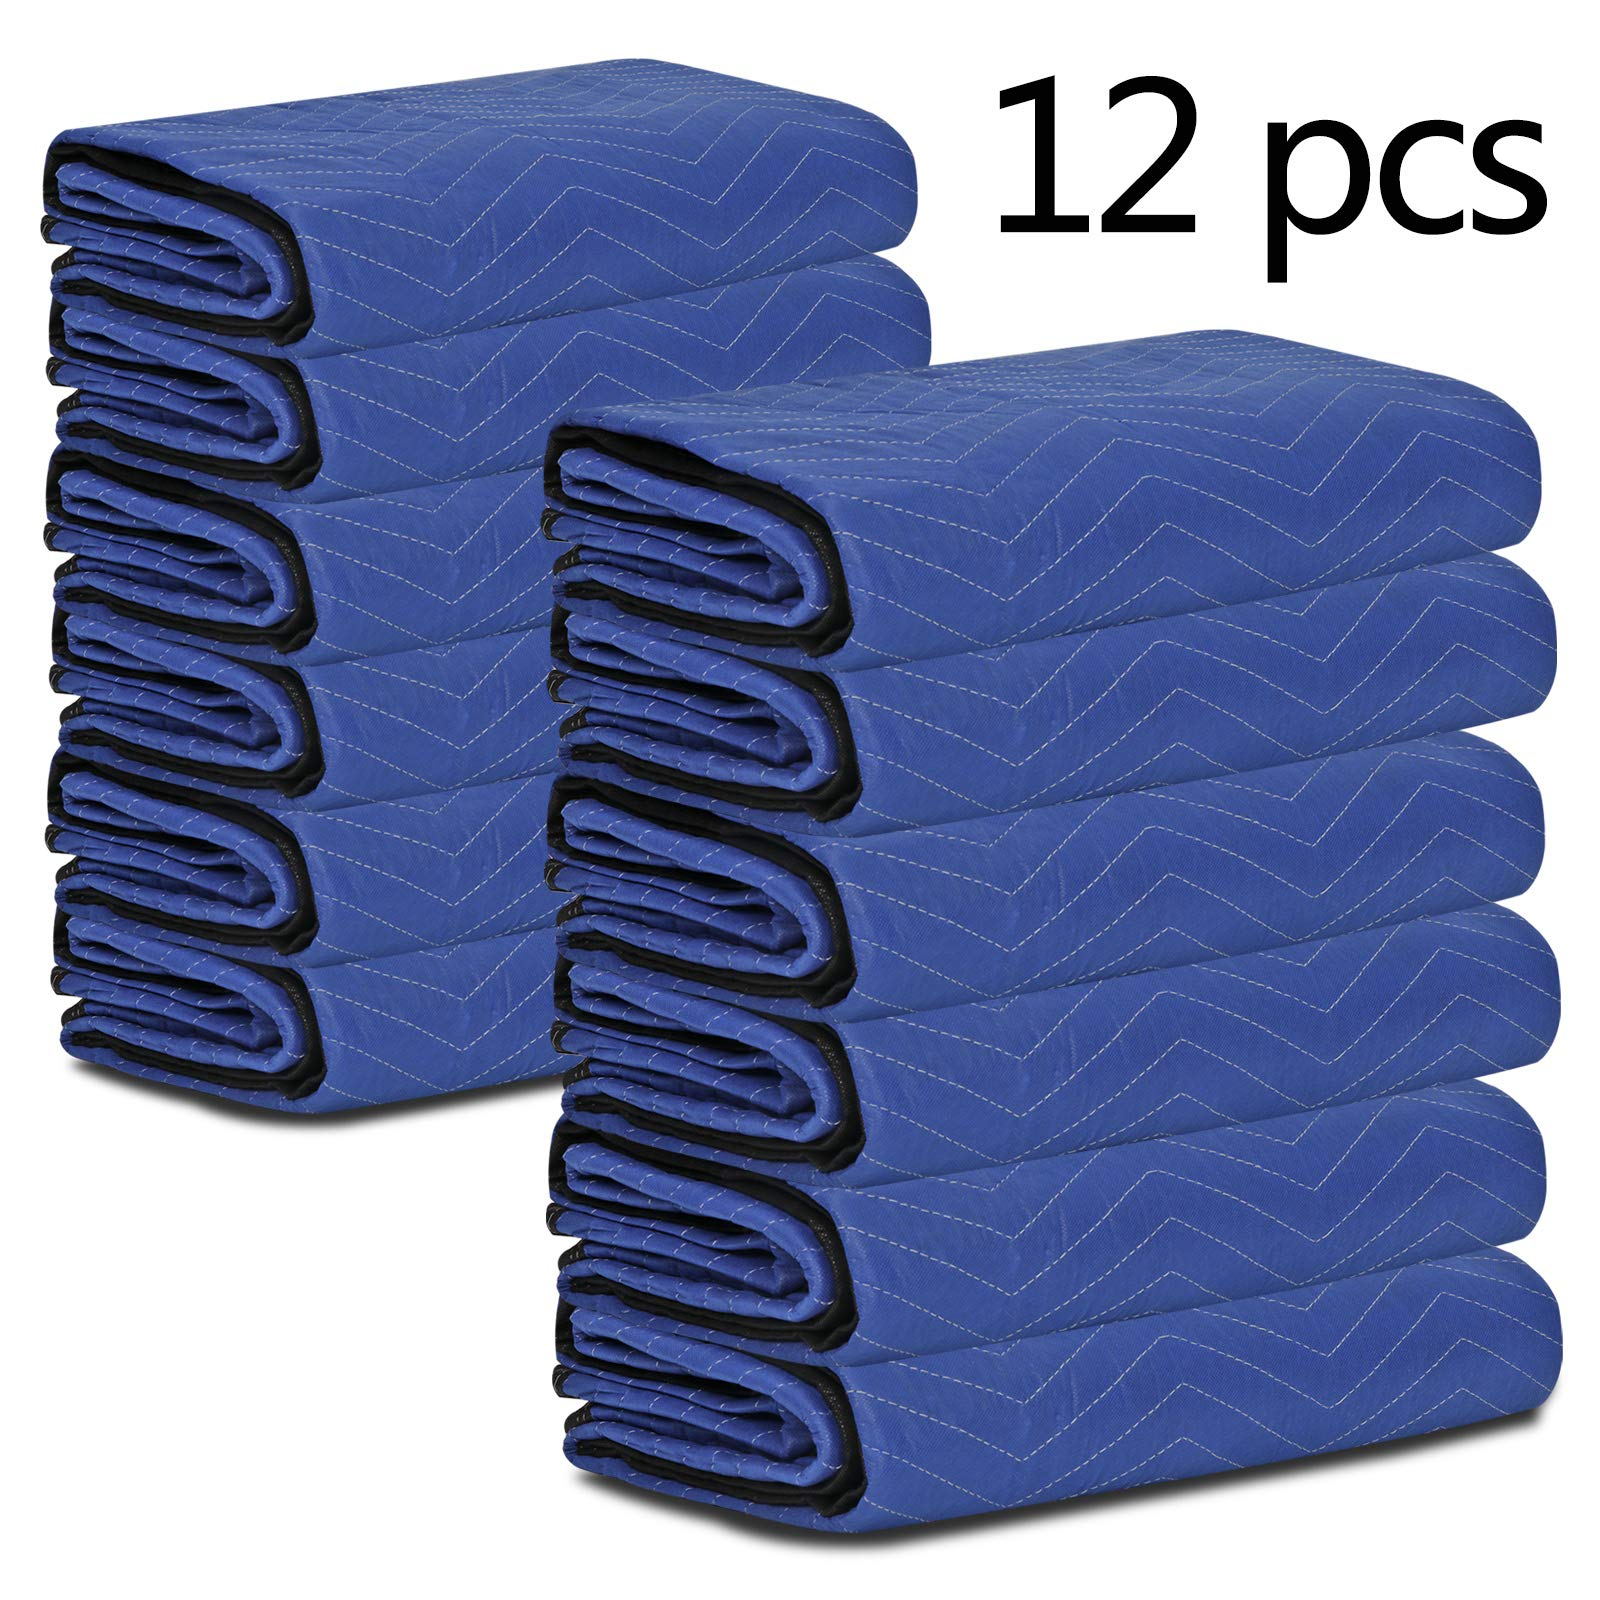 """F2C Mover Moving Blankets Pro Economy Thick 80""""x 72"""" Moving Packing Blankets Skins Pack of 12 Total 35Lbs/ Doz, Blue by F2C (Image #6)"""